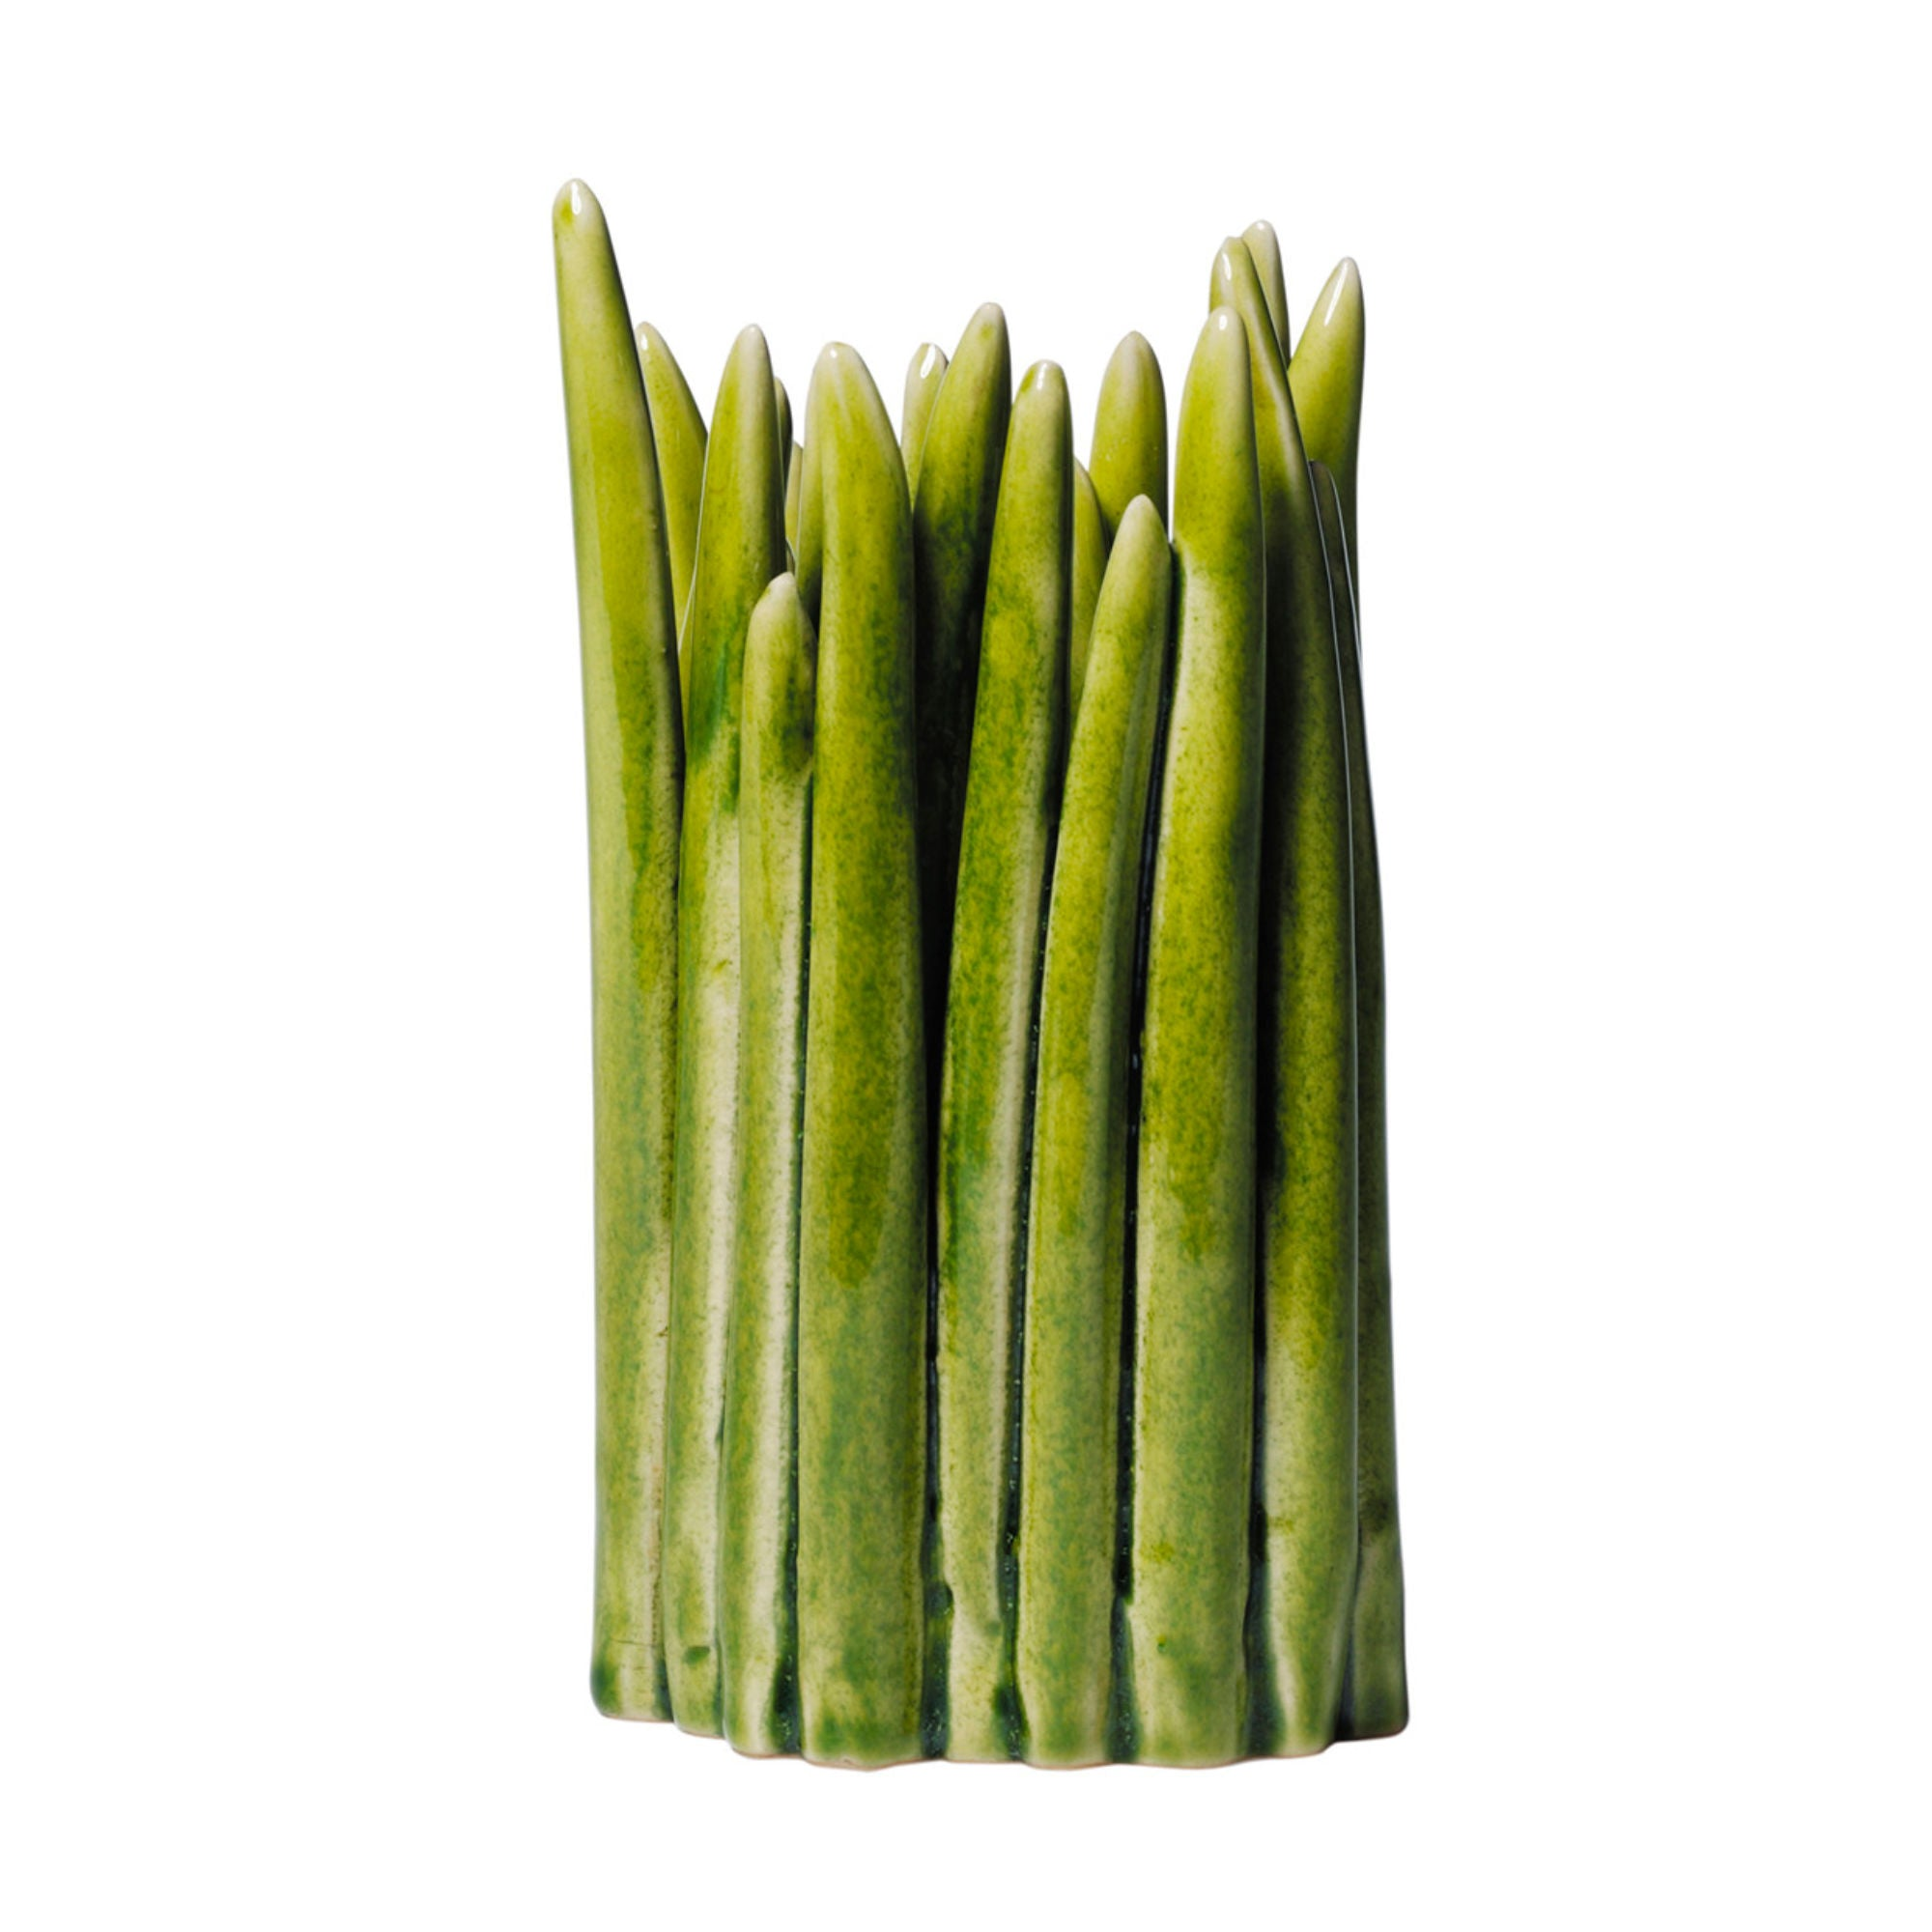 Normann Copenhagen Grass vase, medium